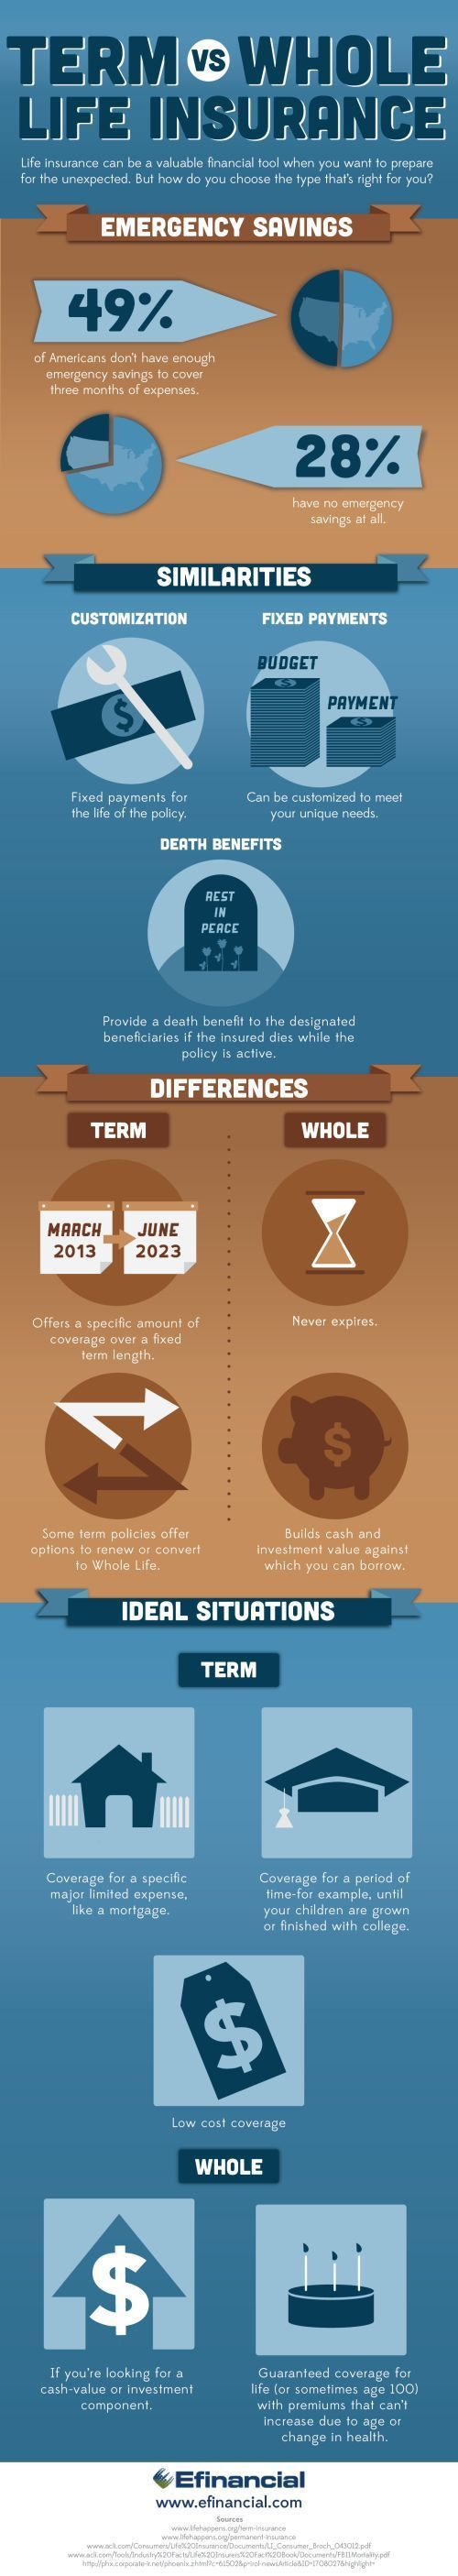 Term Vs Whole Life Insurance Infographic Insurance Life